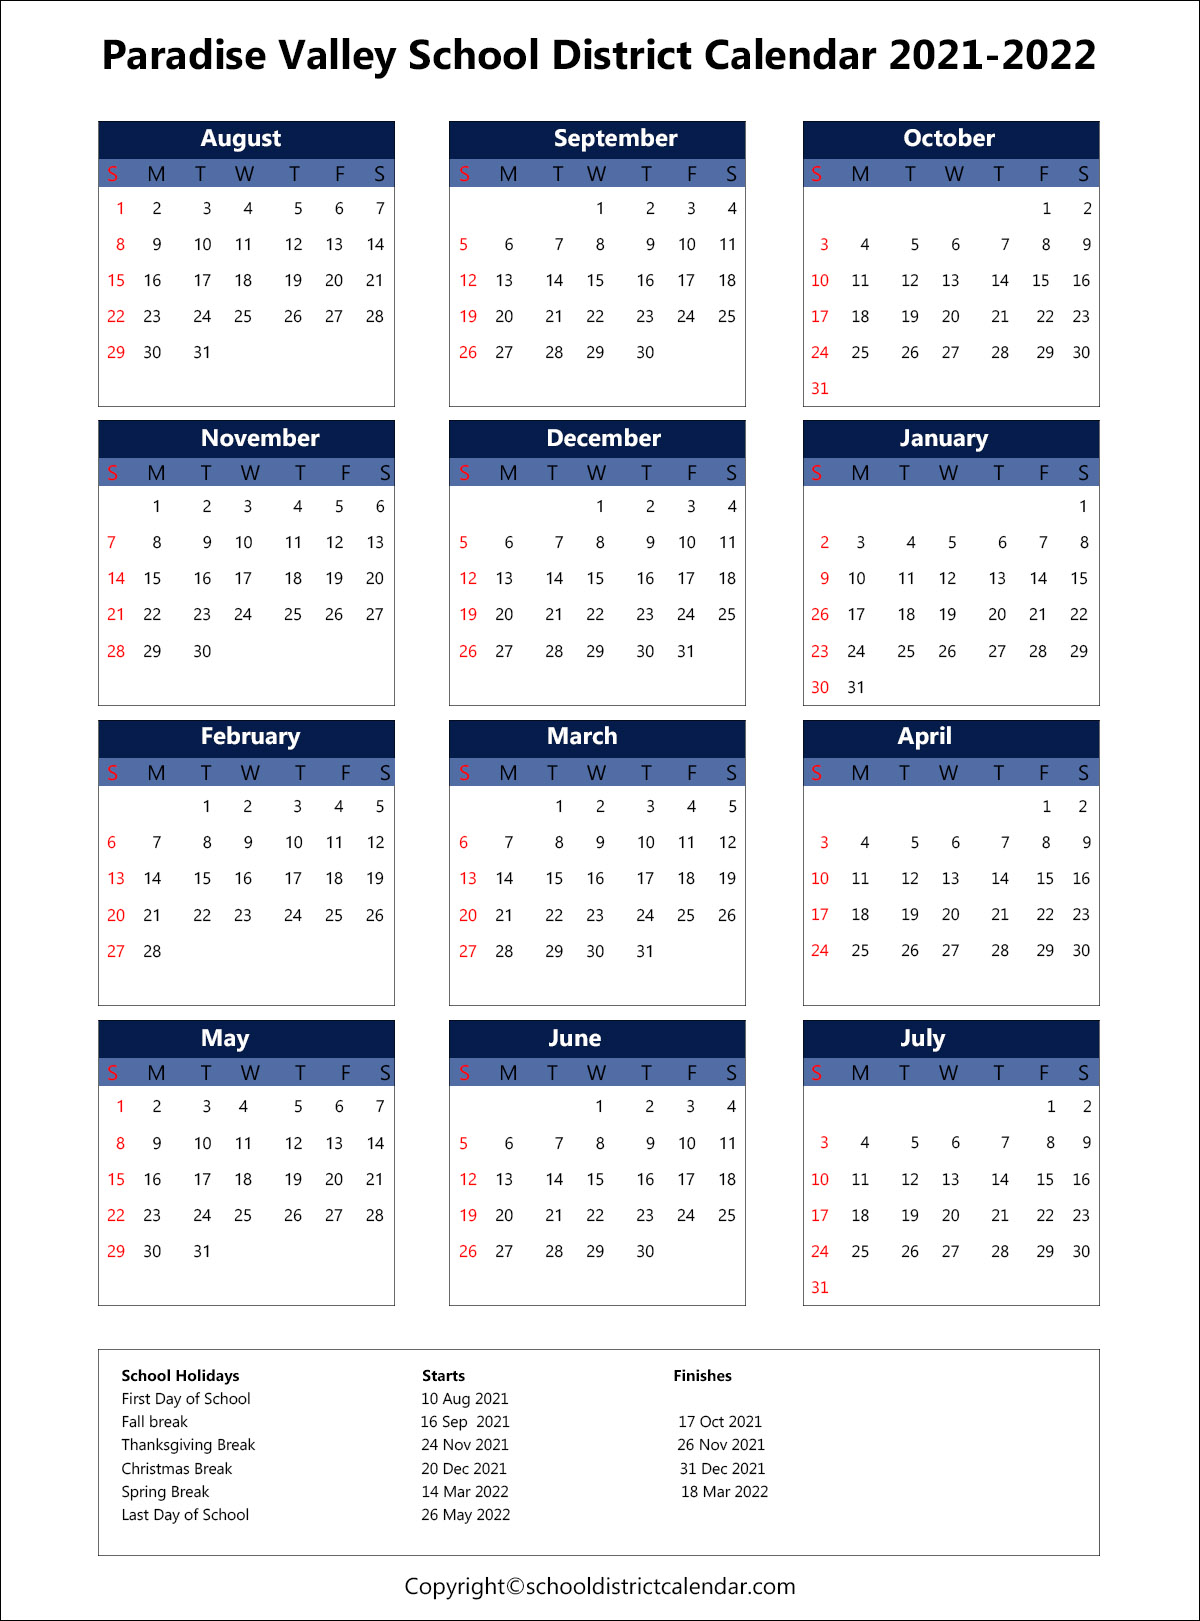 Paradise Valley Unified School District Calendar 2021